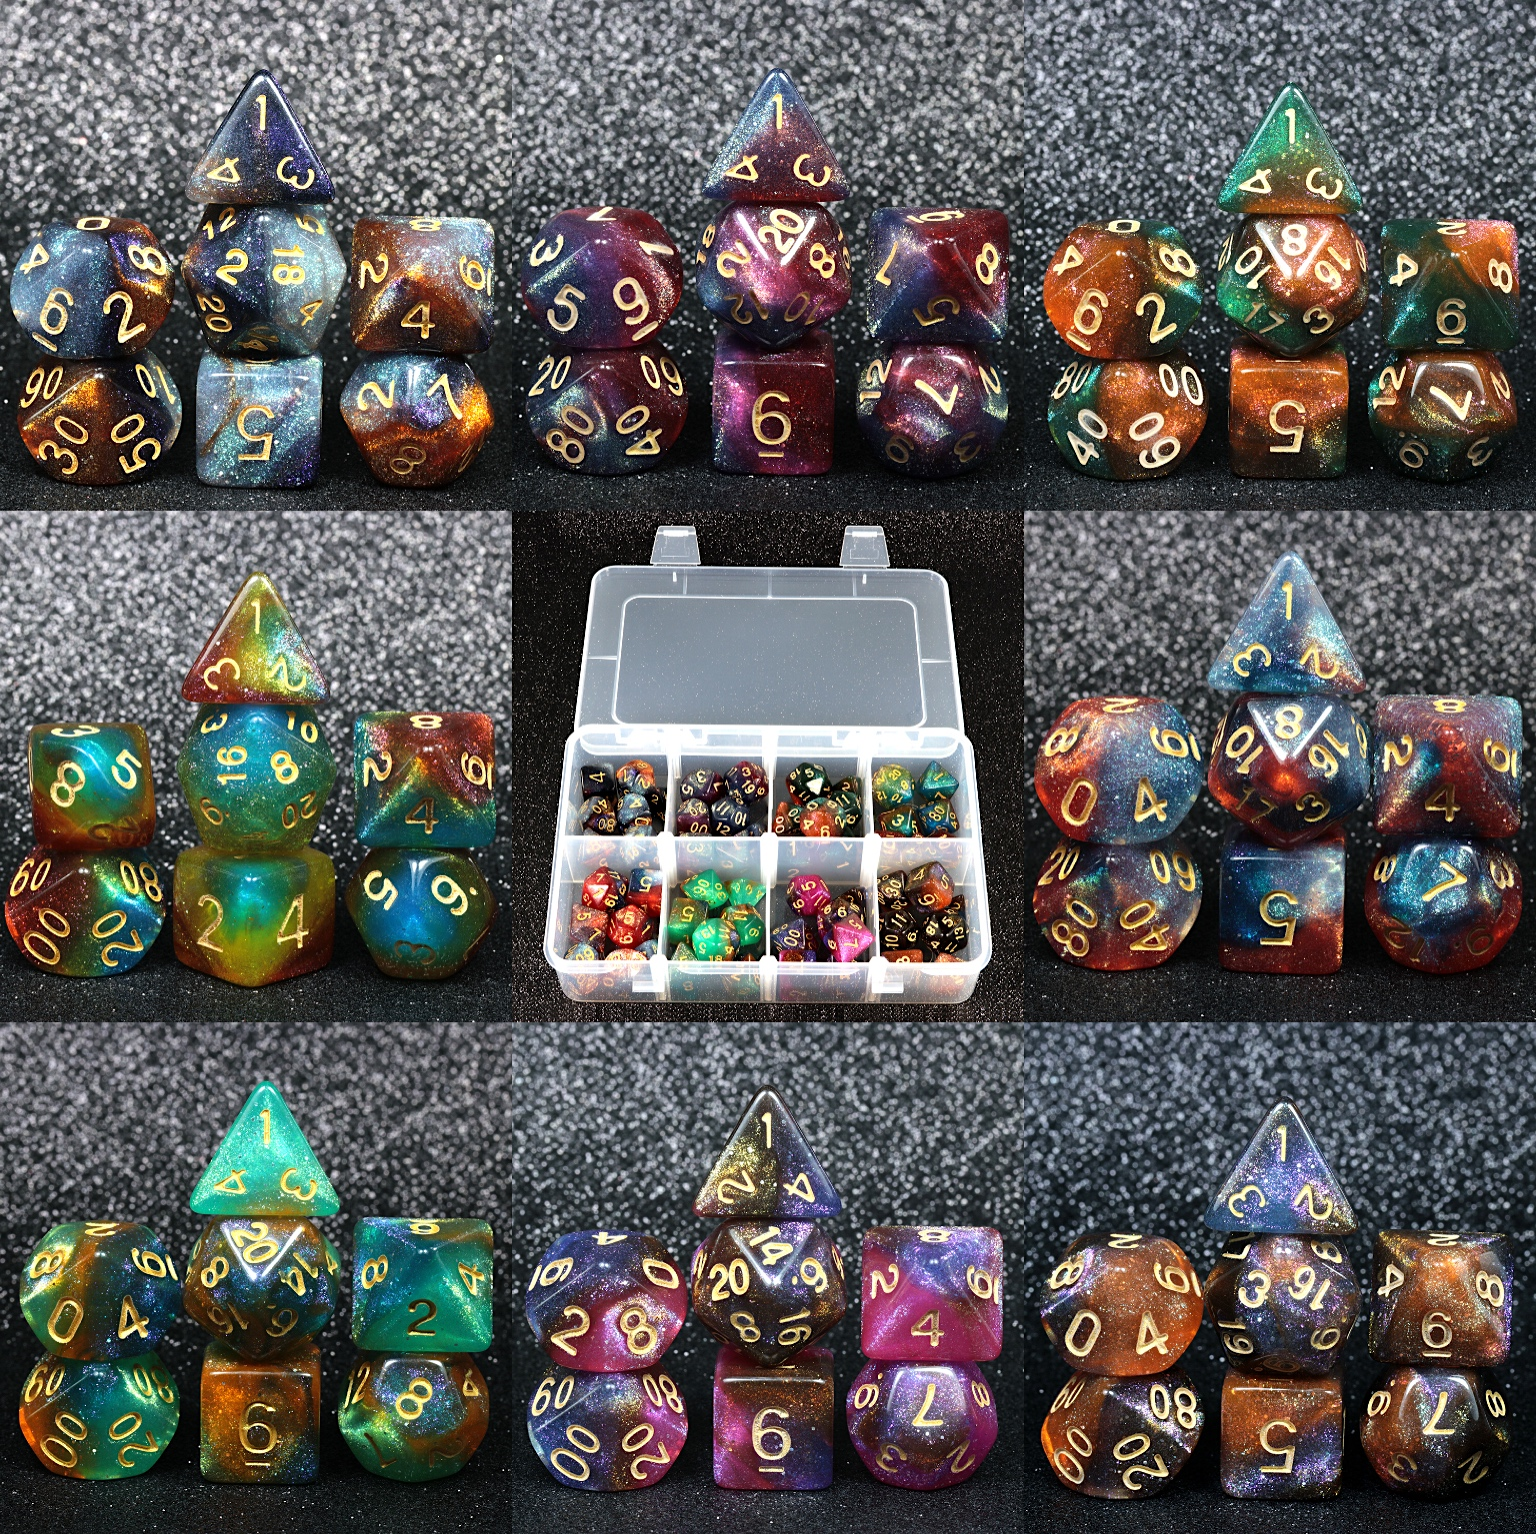 56pcs / Box Collection Universe Galaxy DND Dice Universe Galaxy Dice DnD RPG Games Hobbies Dungeon And Dragons Dice